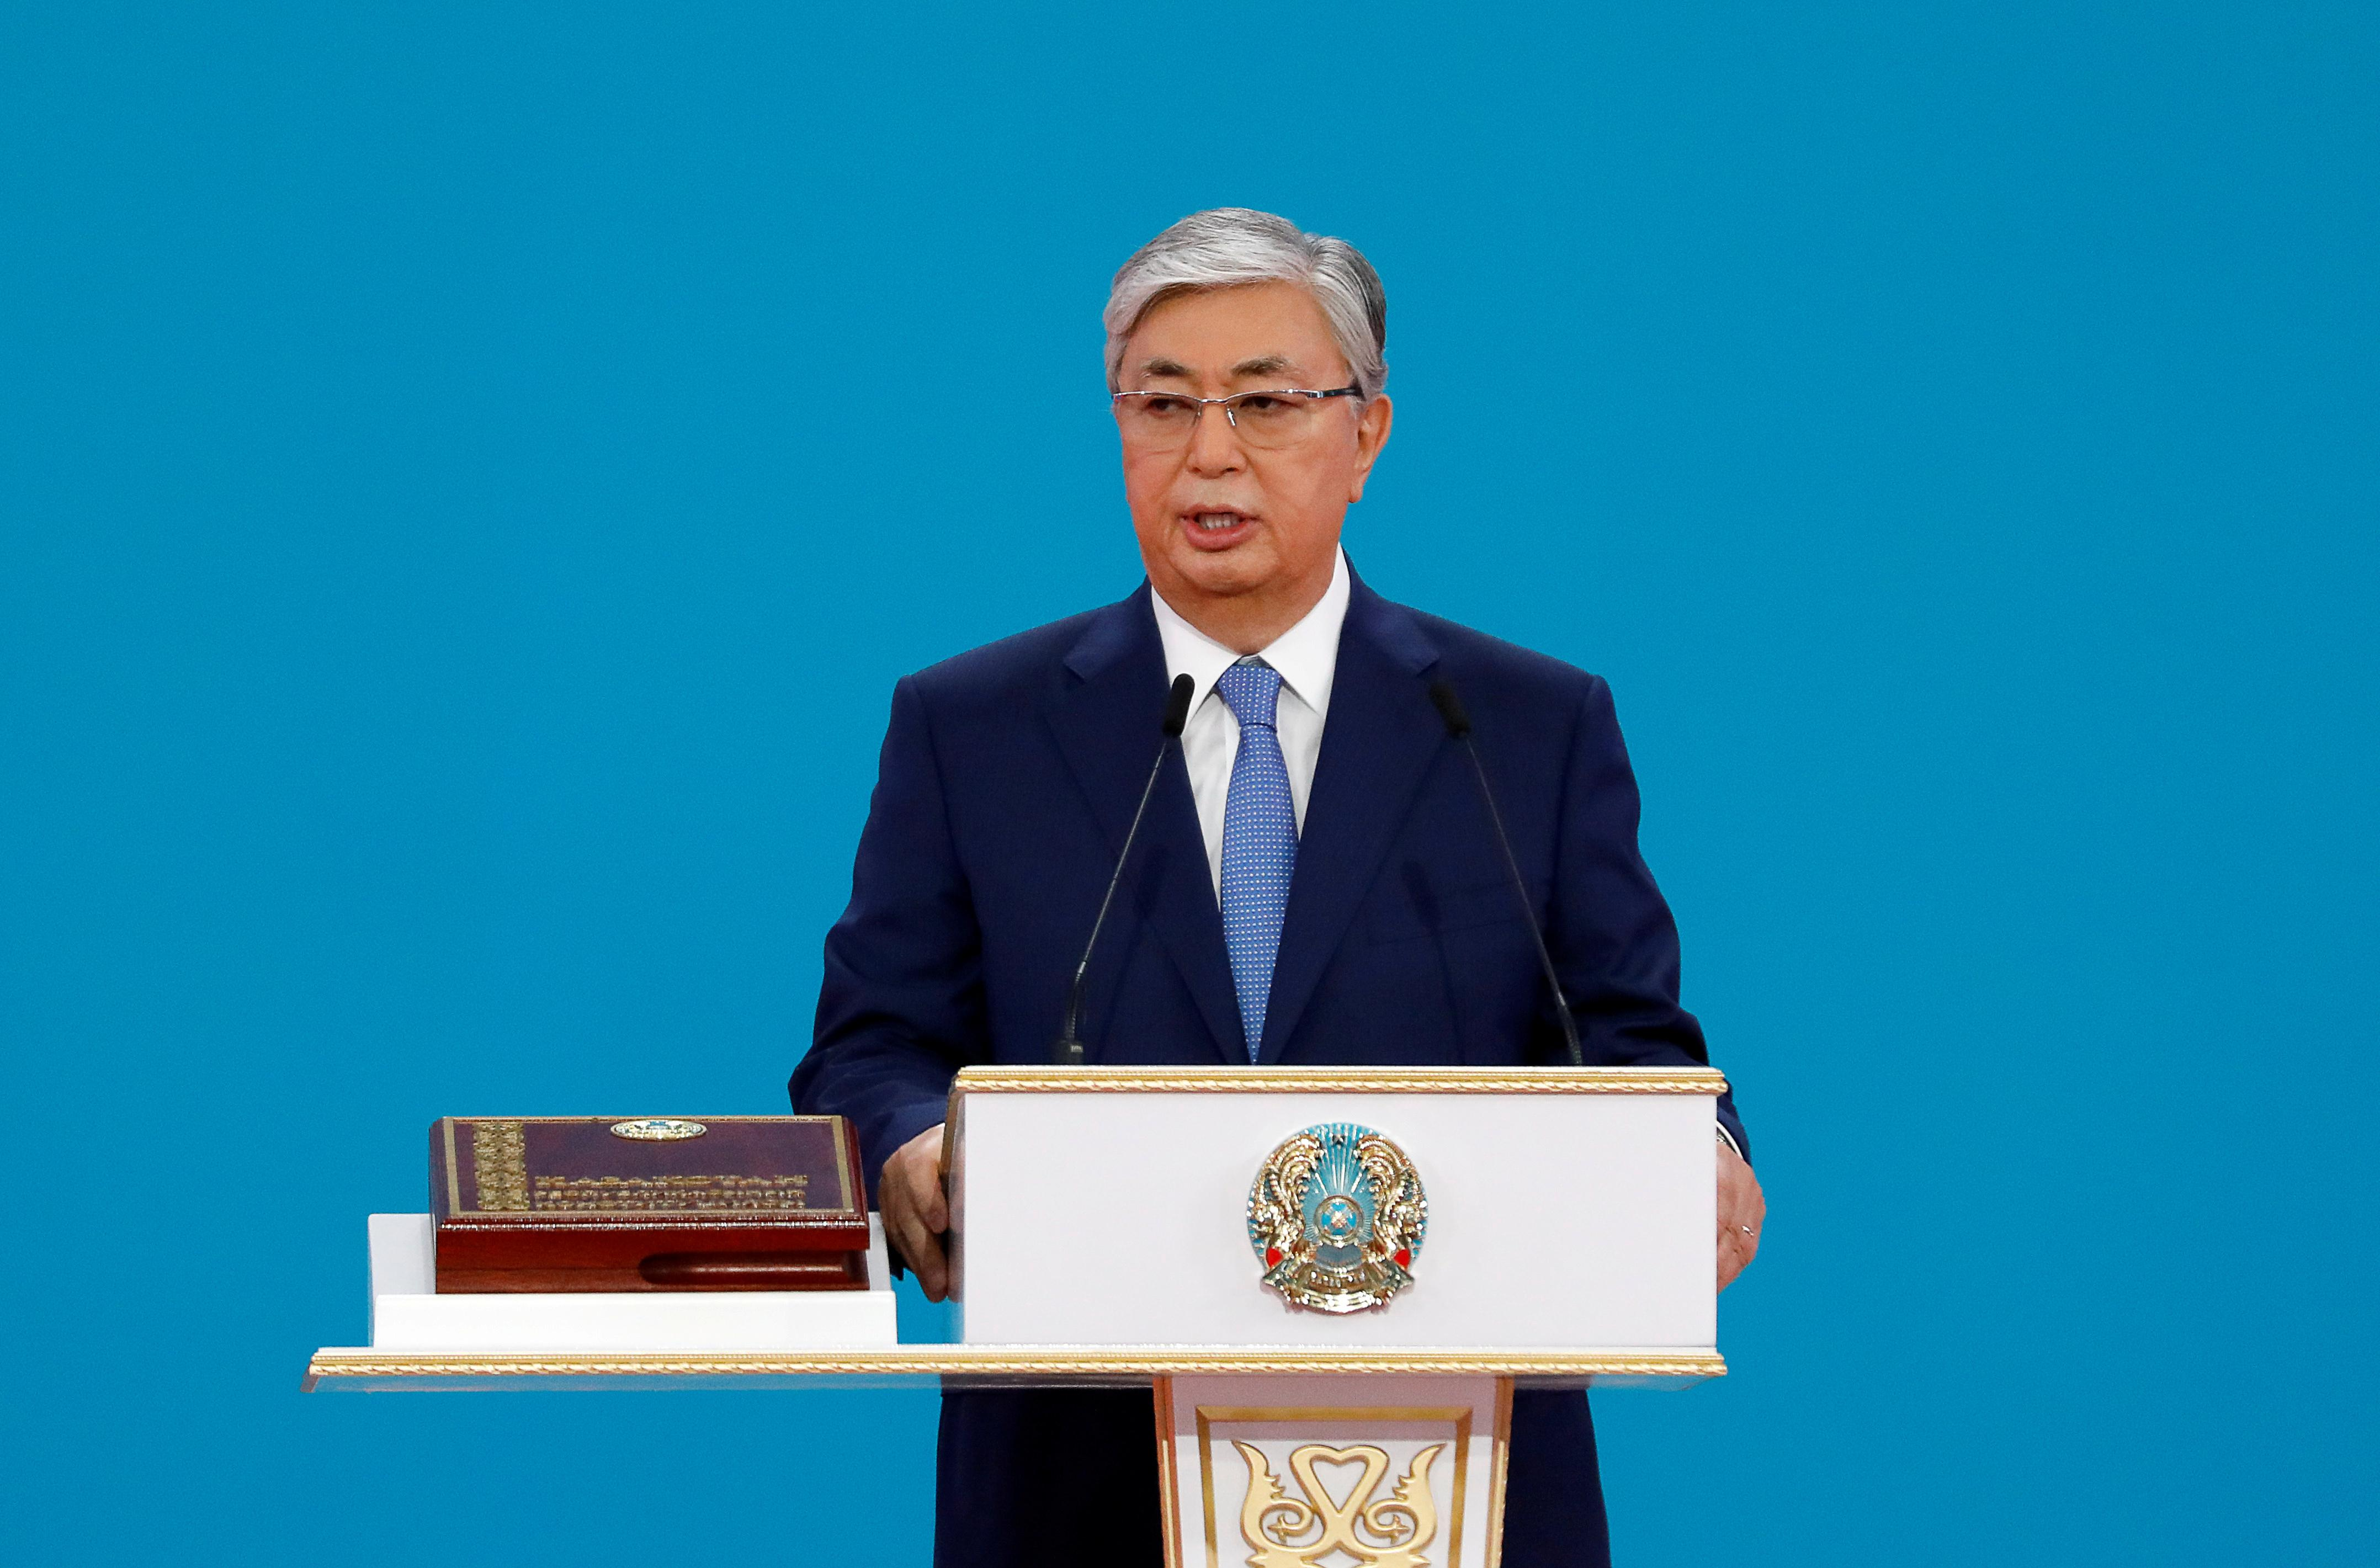 Kazakh president raps monetary policy ahead of key rate review